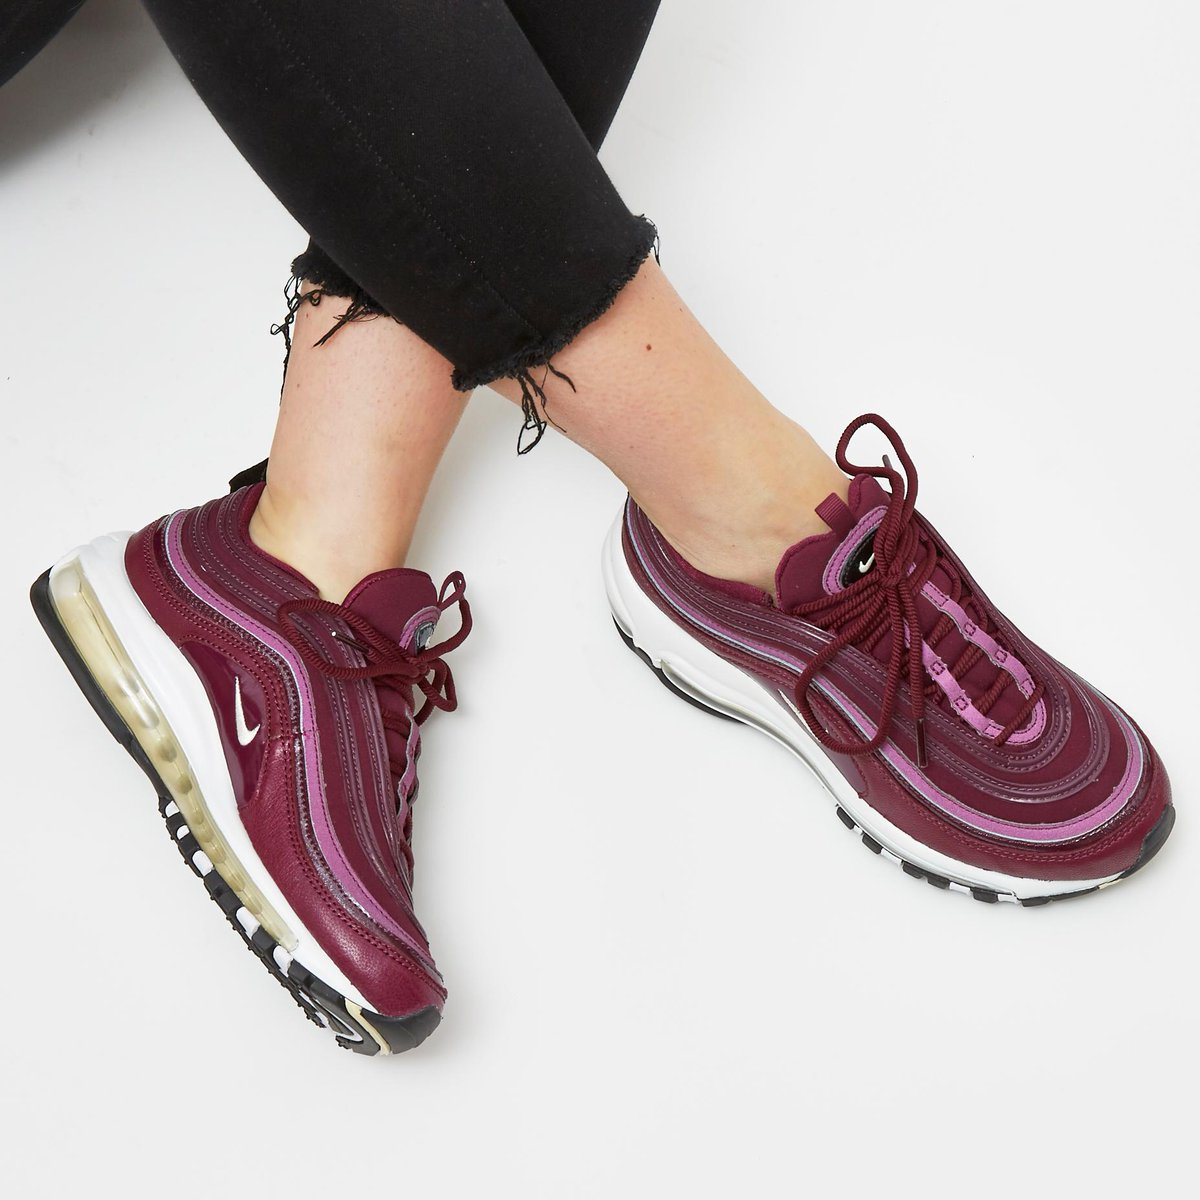 official photos 20666 80bf7 Launching nike Air Max Bordeaux Christmas gift ...